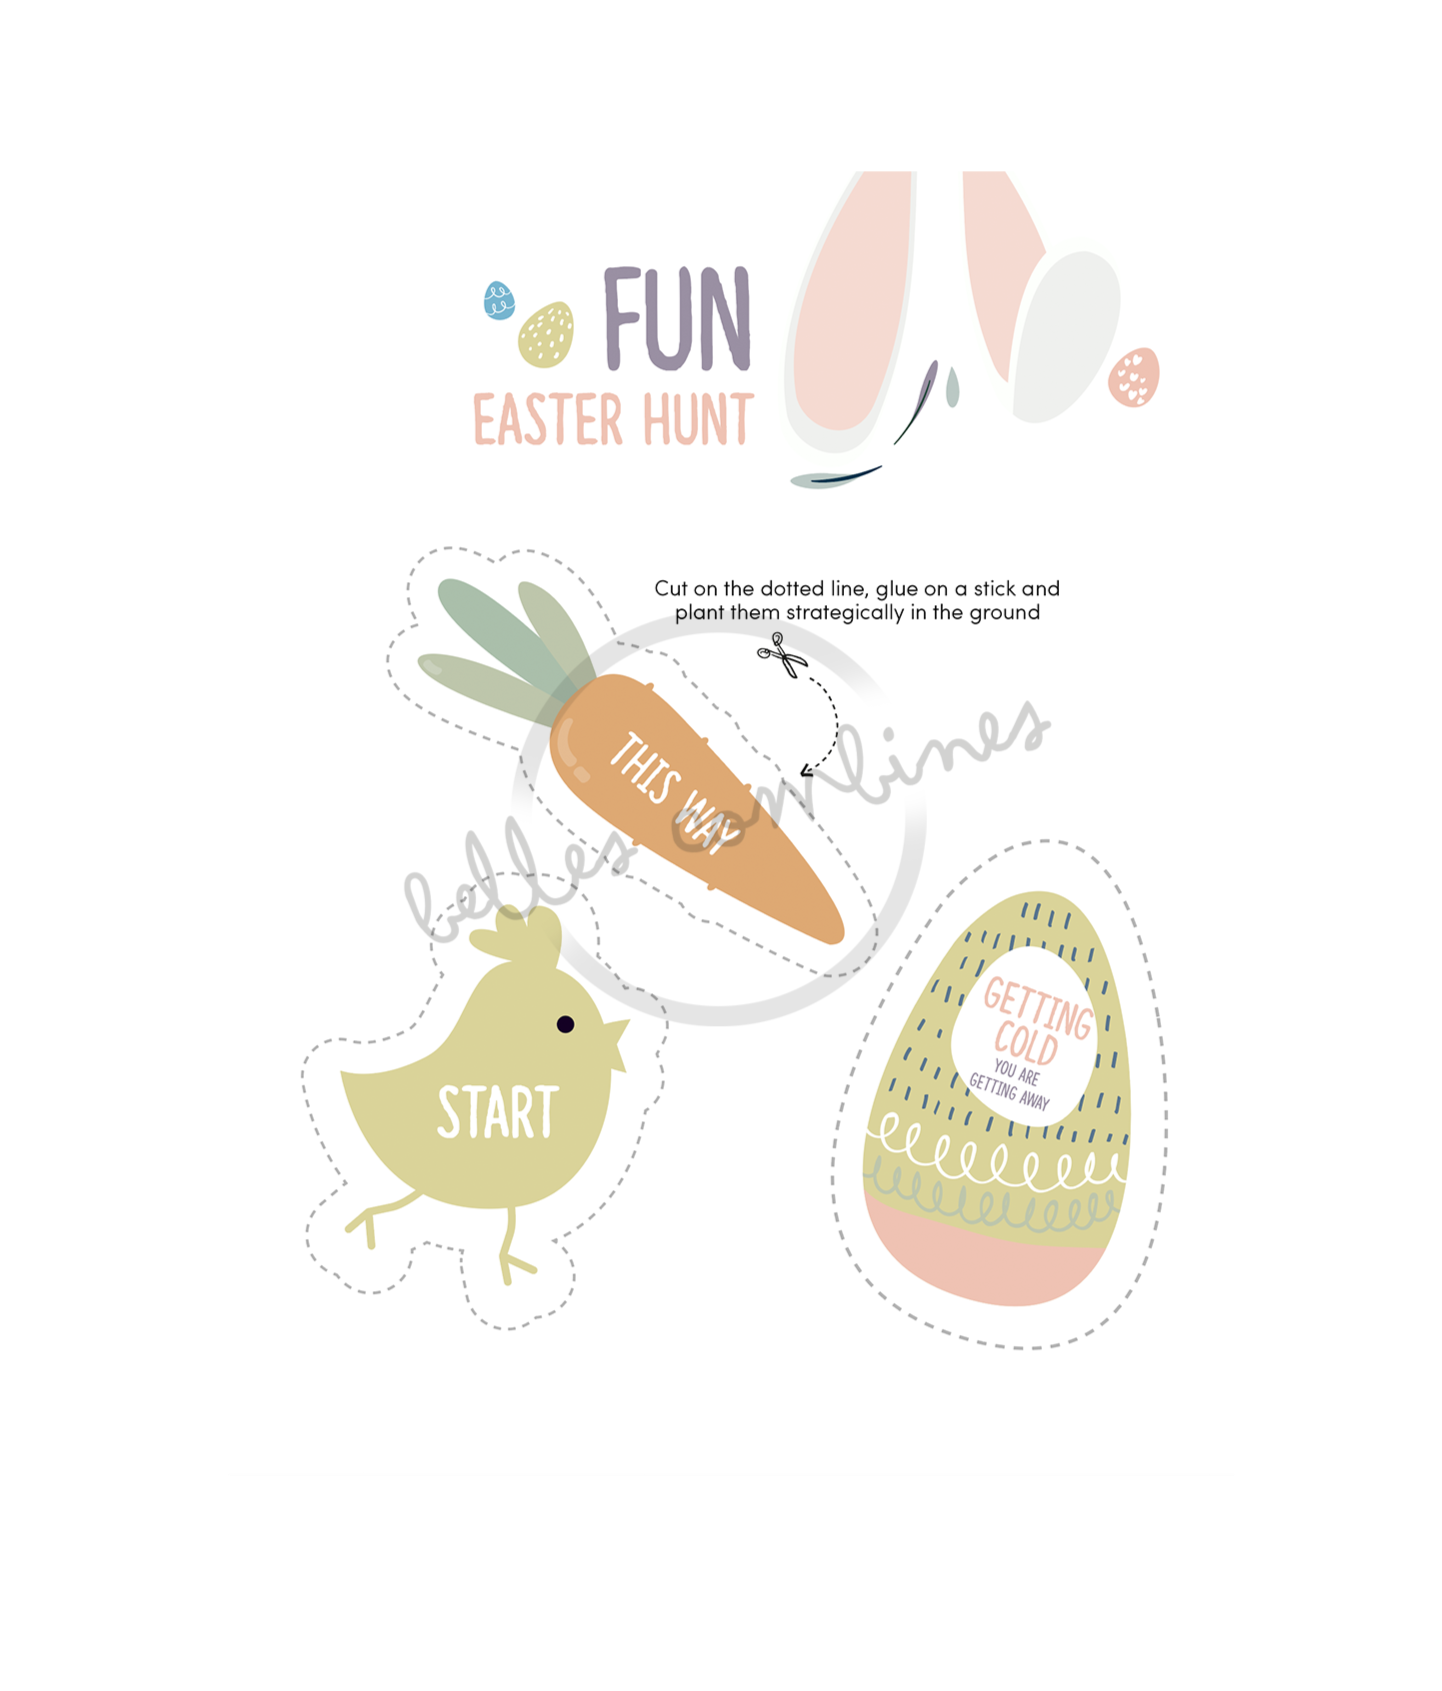 English version of the fun easter hunt document made by Les Belles Combines